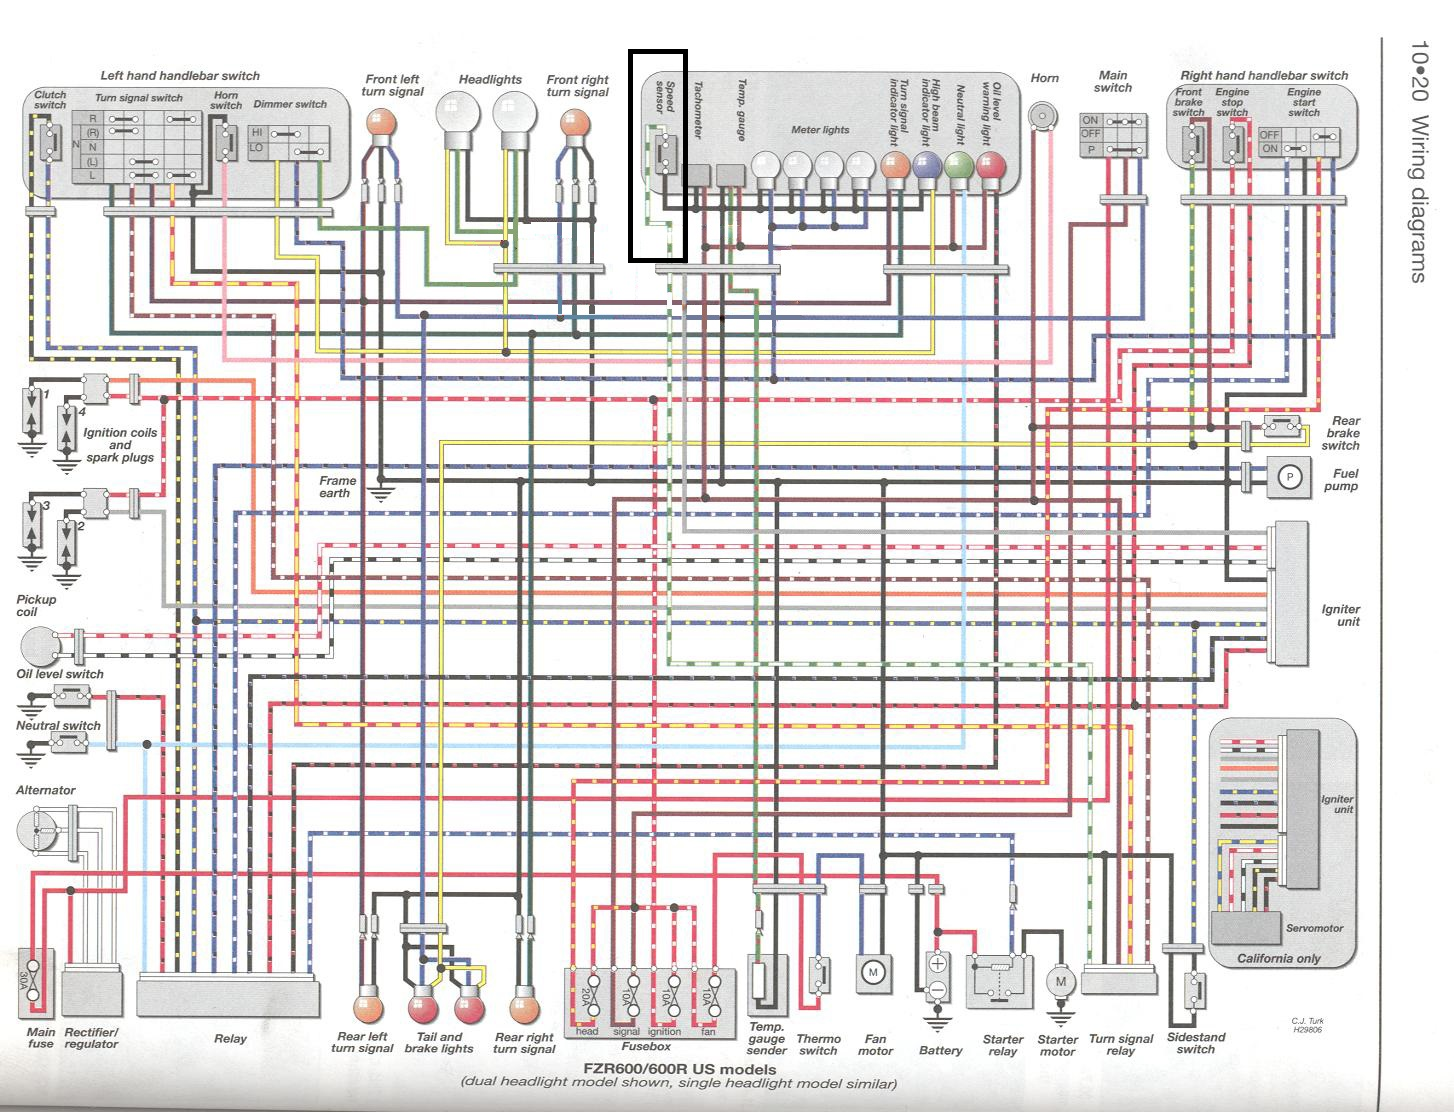 hight resolution of yamaha xj600 wiring diagram wire data schema u2022 rh frana co 92 yamaha